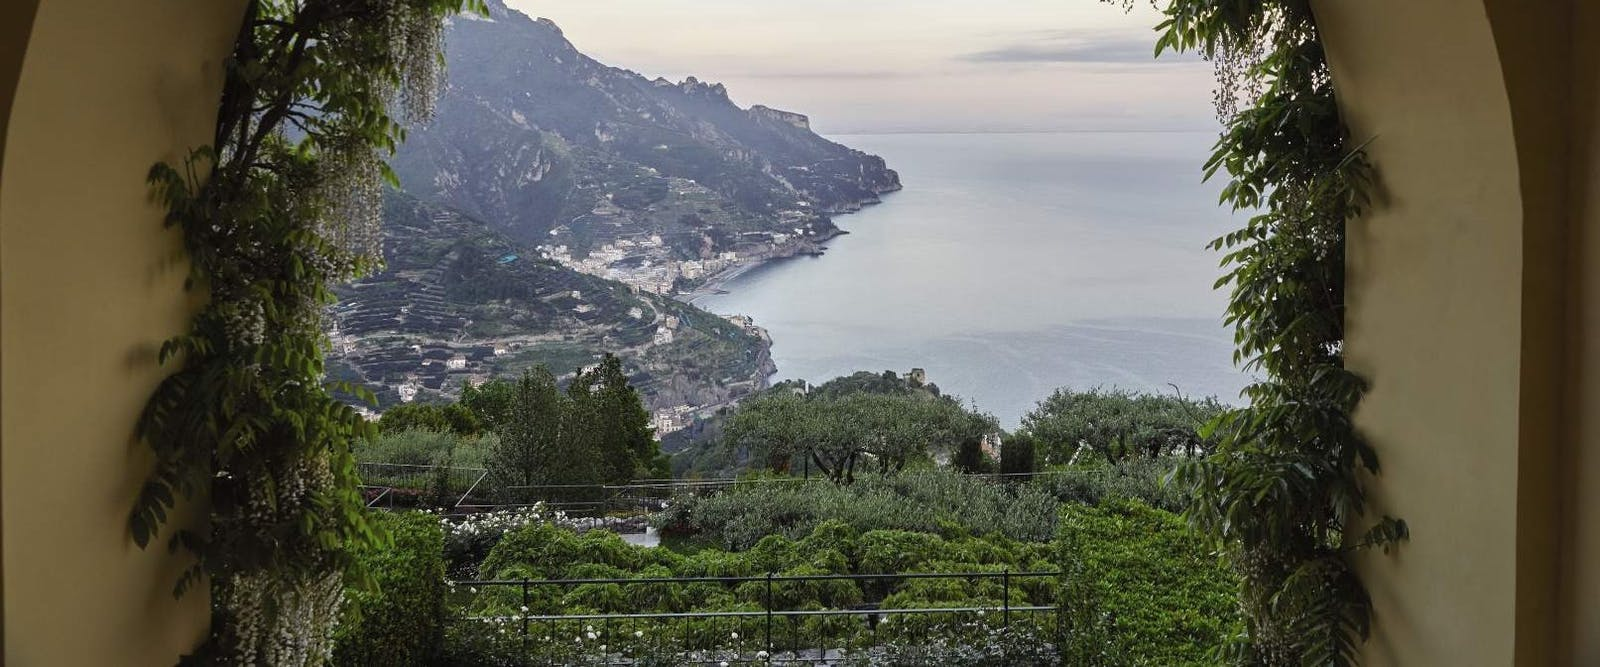 Beautiful View from Belmond Hotel Caruso, Amalfi Coast, Italy